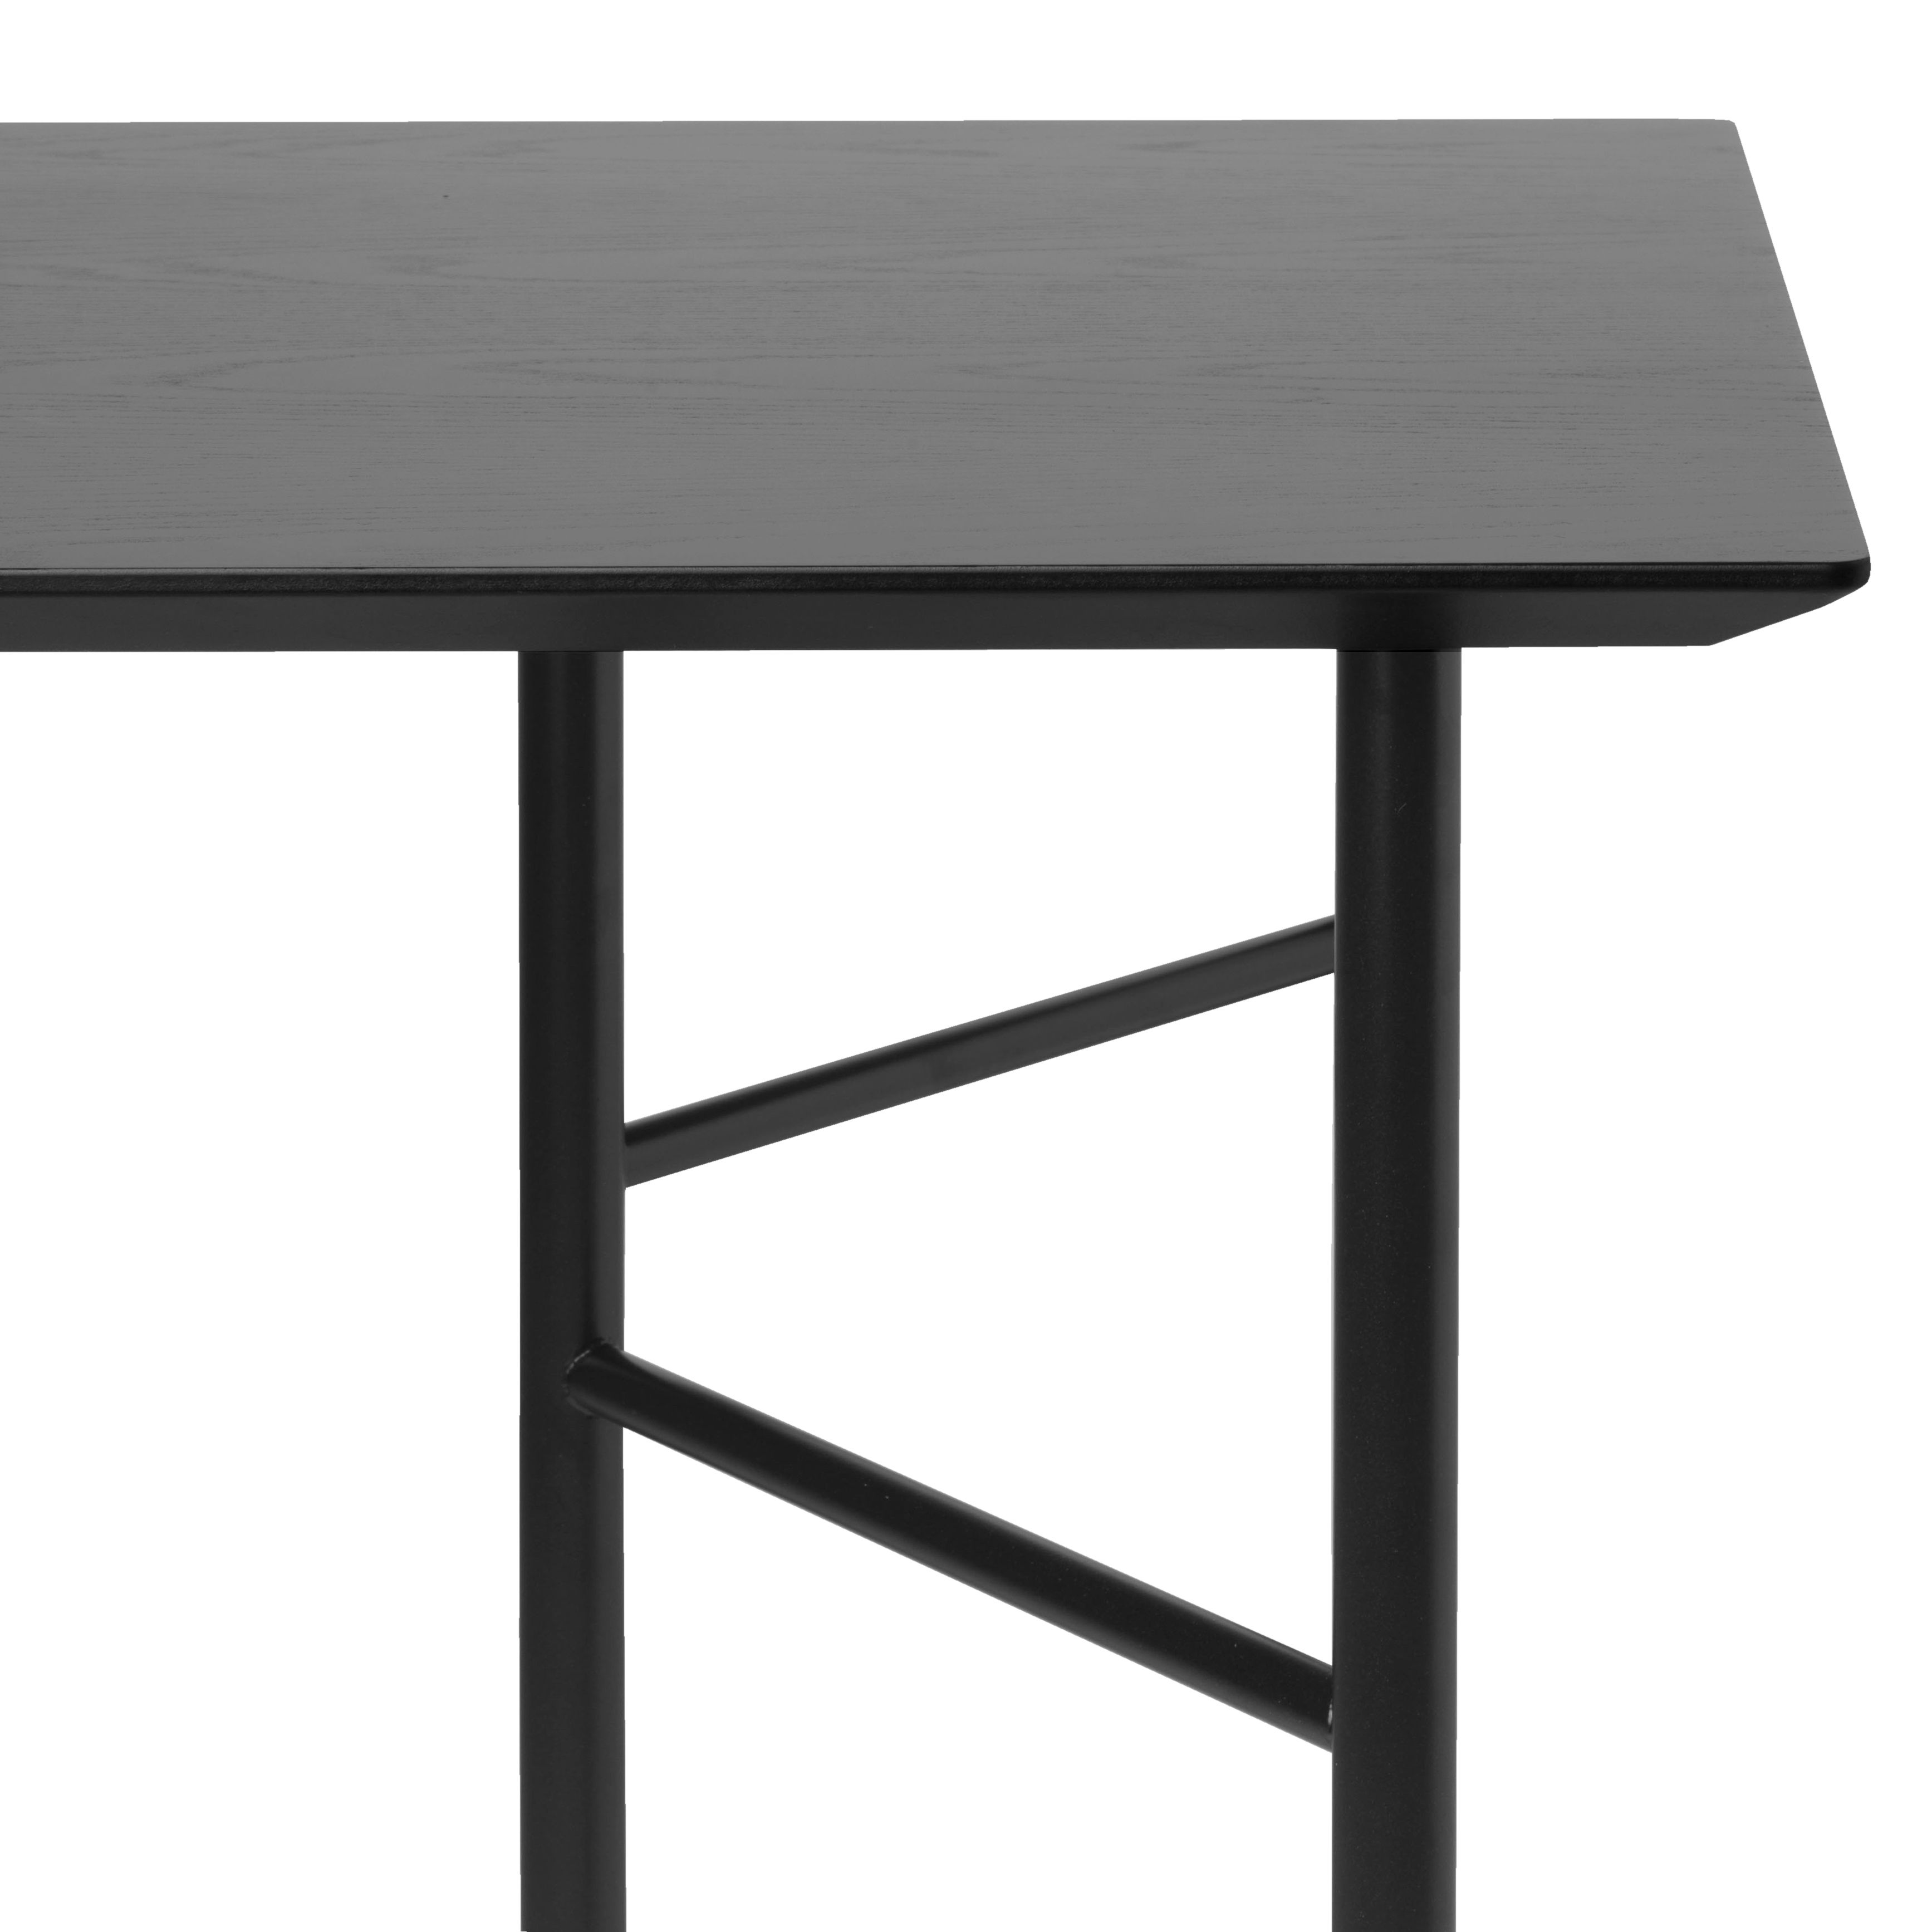 Furniture - Office Furniture - Table top - / for trestle Ming Large - 160 x 90 cm by Ferm Living - Top / Black - Lacquered oak veneer on MDF